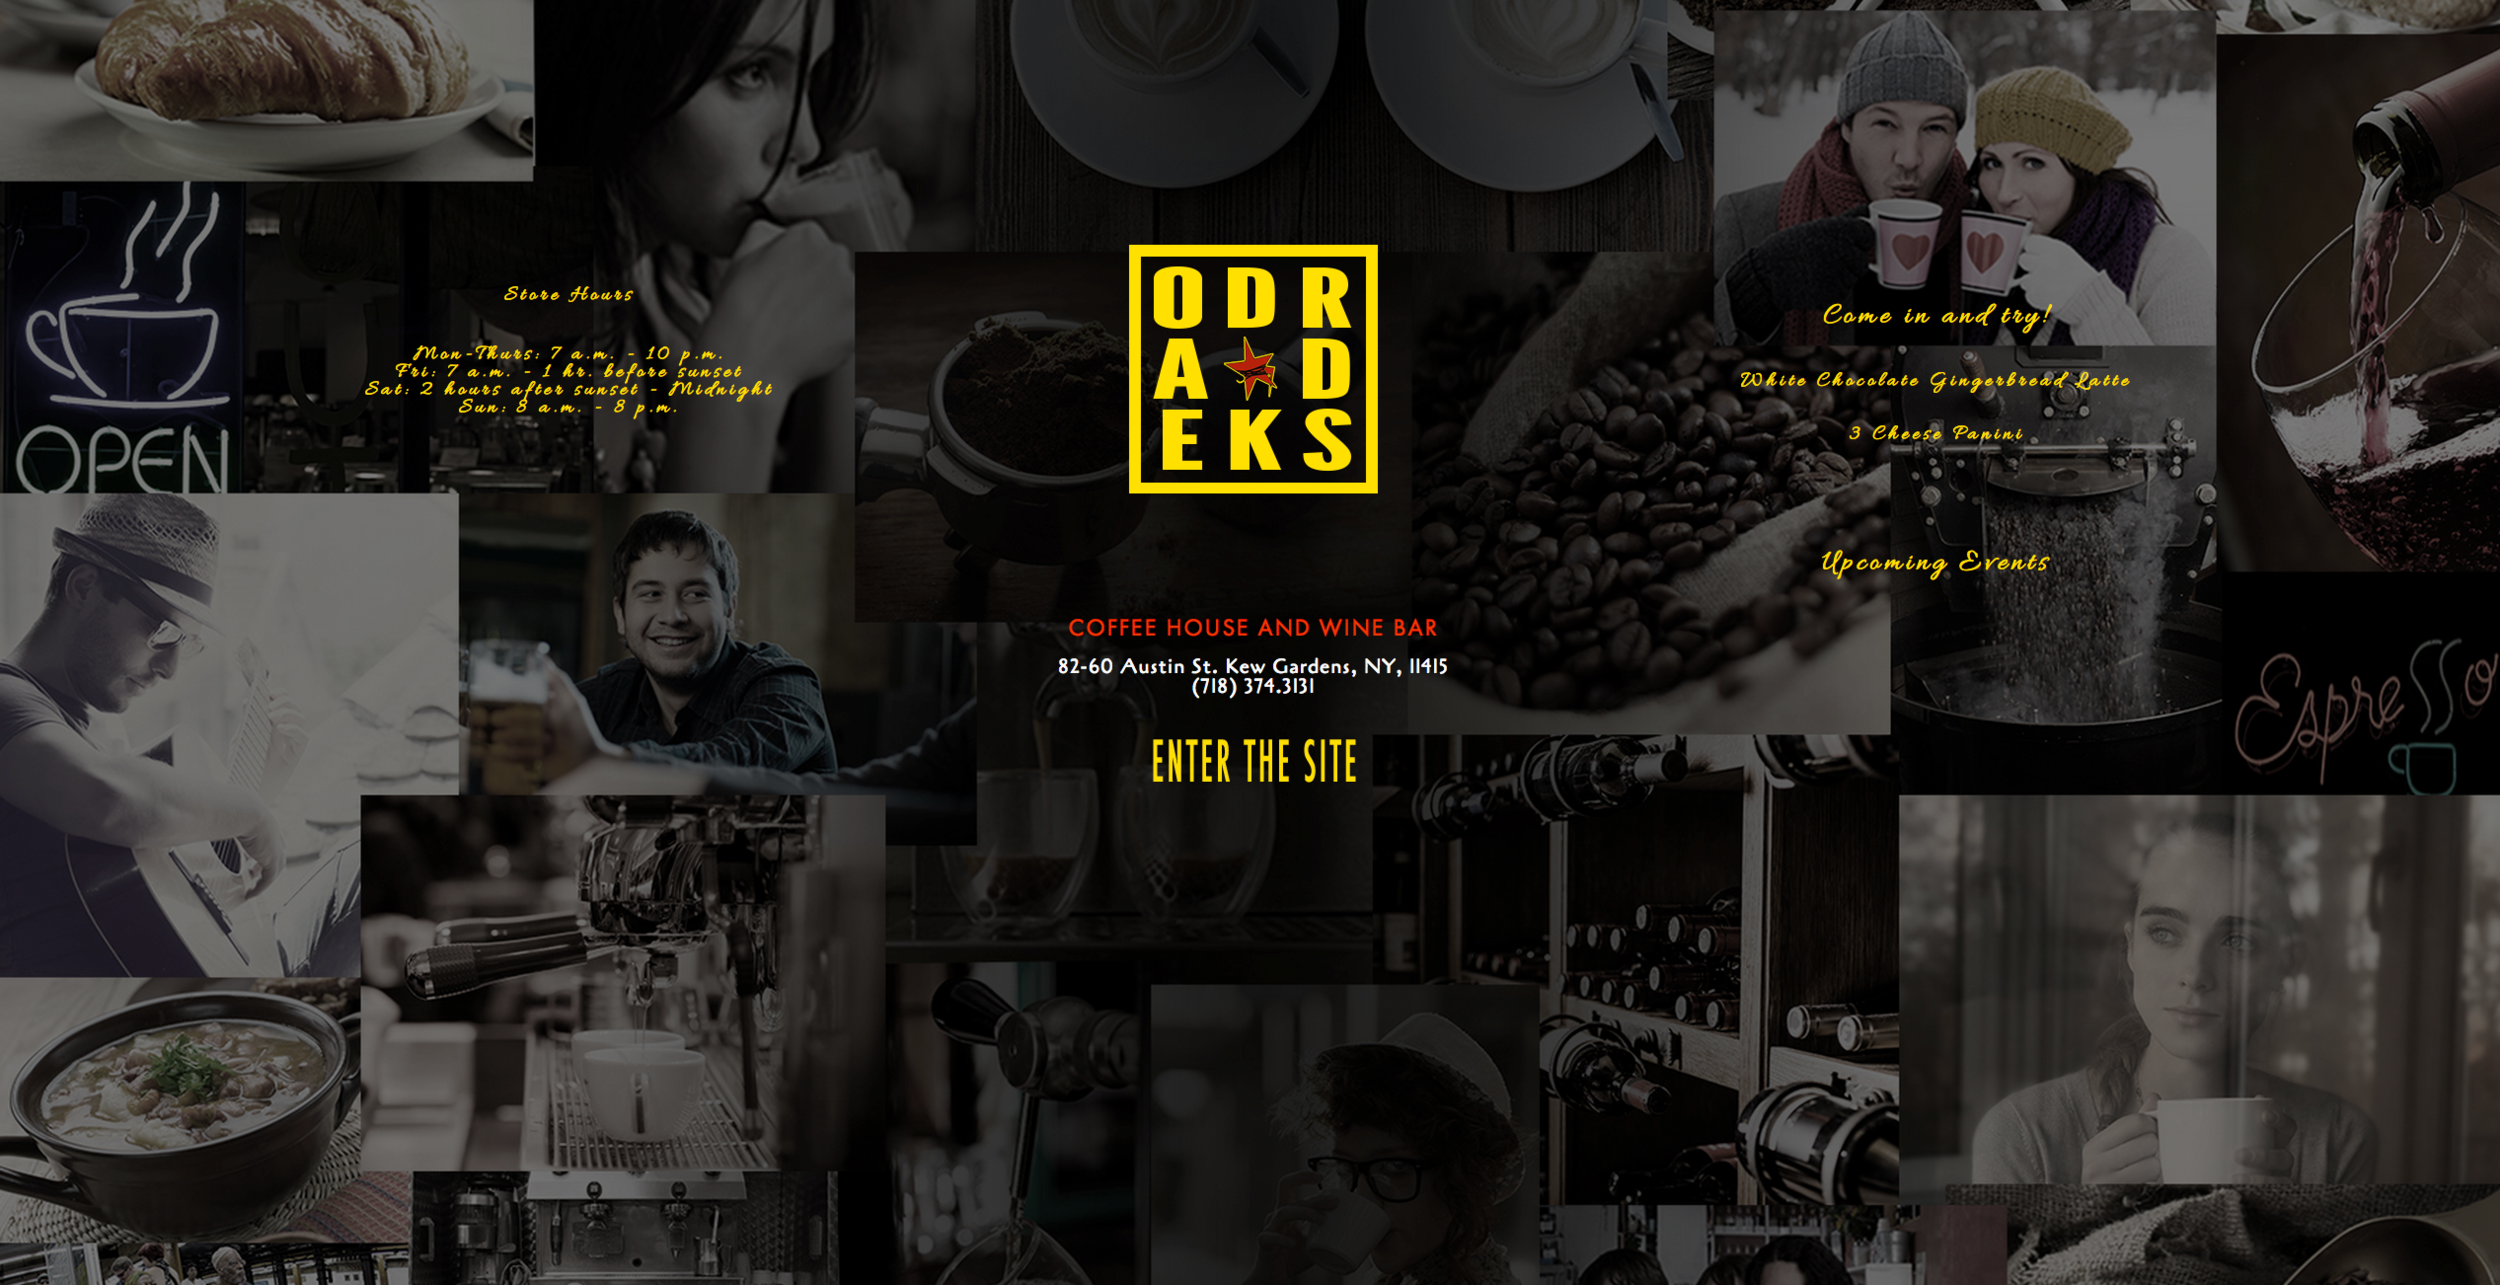 Odradeks Coffee